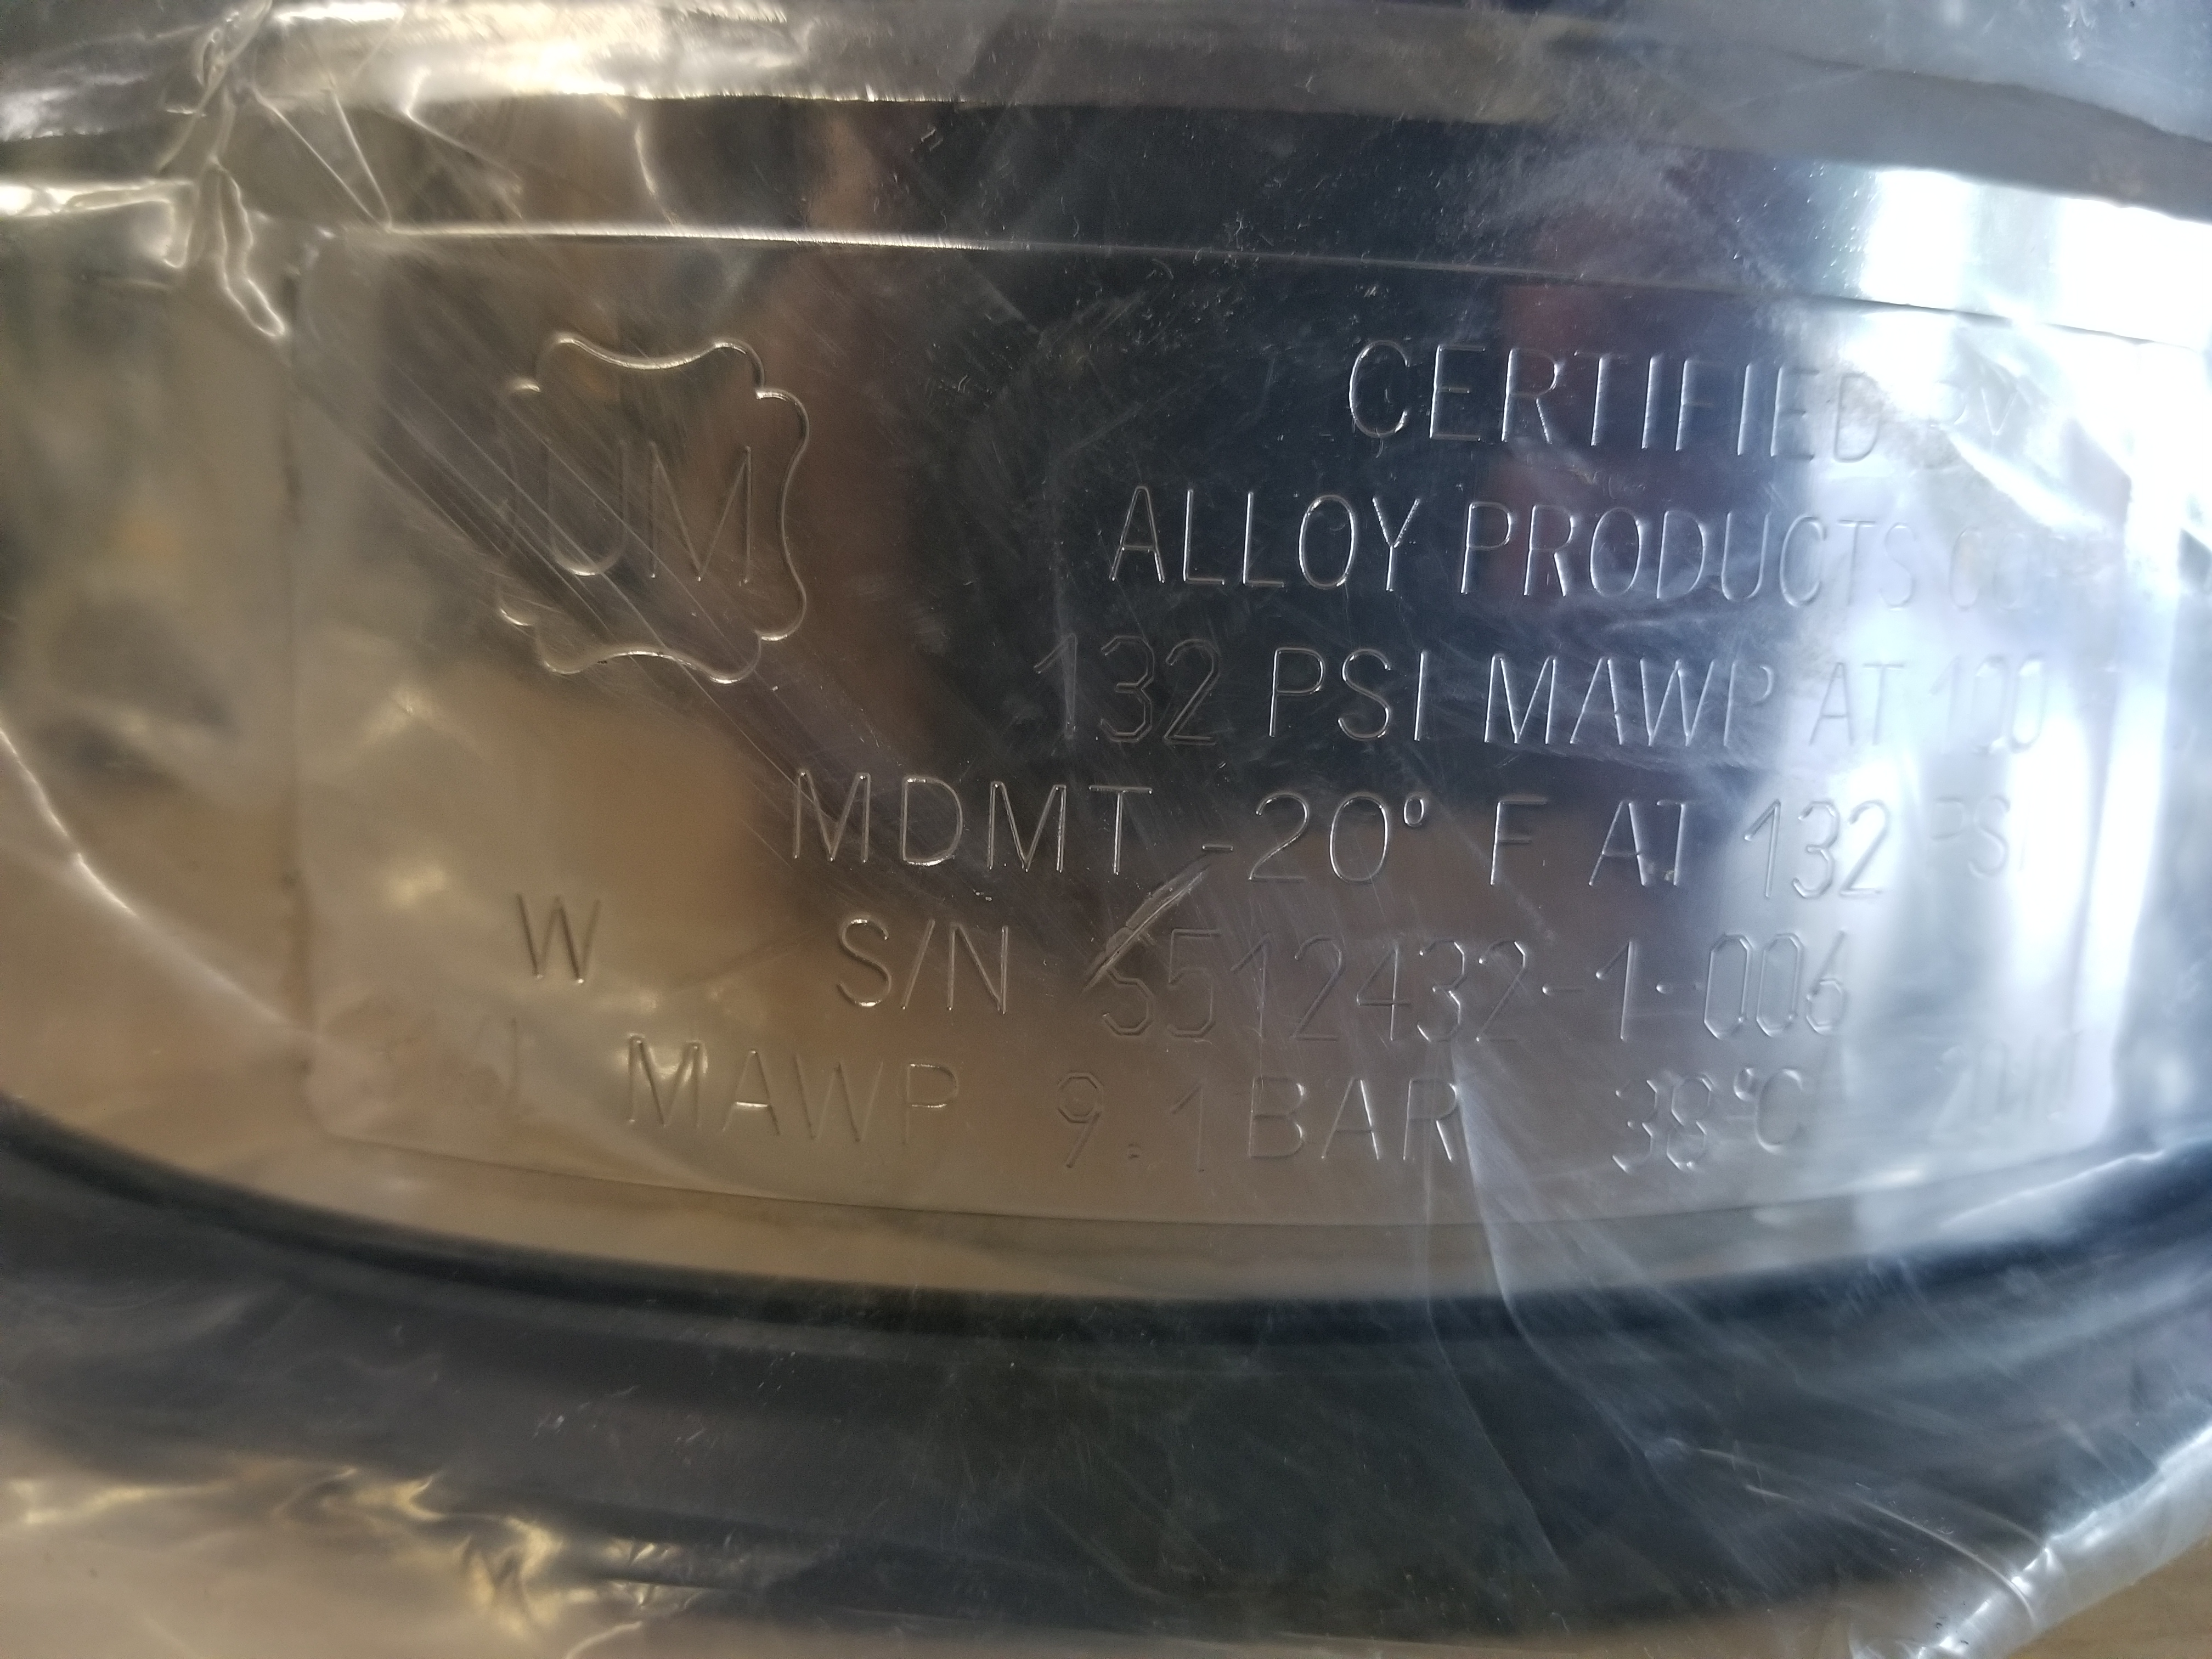 New Alloy Products 316L Stainless Steel Pressure Vessel - Image 10 of 12